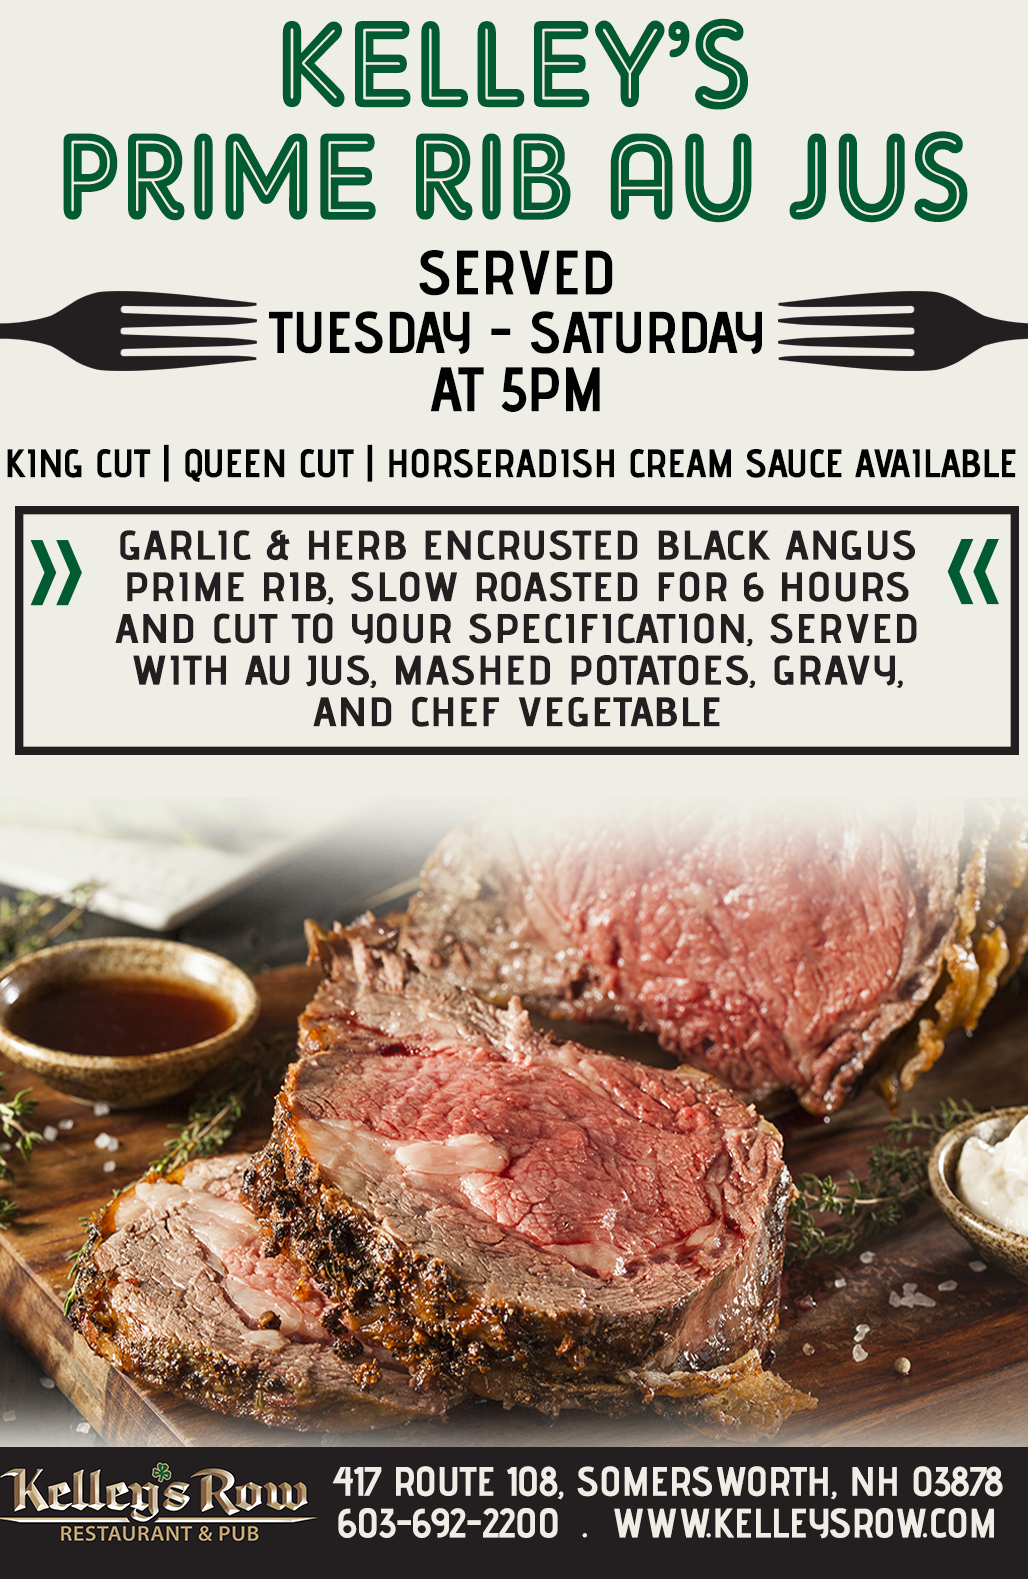 Kelley's prime rib au jus served tuesday - Saturday at 5PM Garlic & Herb encrusted Black Angus Prime Rib, slow roasted for 6 hours and cut to your specification, served with Au Jus, mashed potatoes, gravy, and chef vegetable. King Cut | Queen Cut | Horseradish Cream Sauce Available  kelley's row 417 route 108 somersworth, nh 03878 603-692-2200 kelleysrow.com